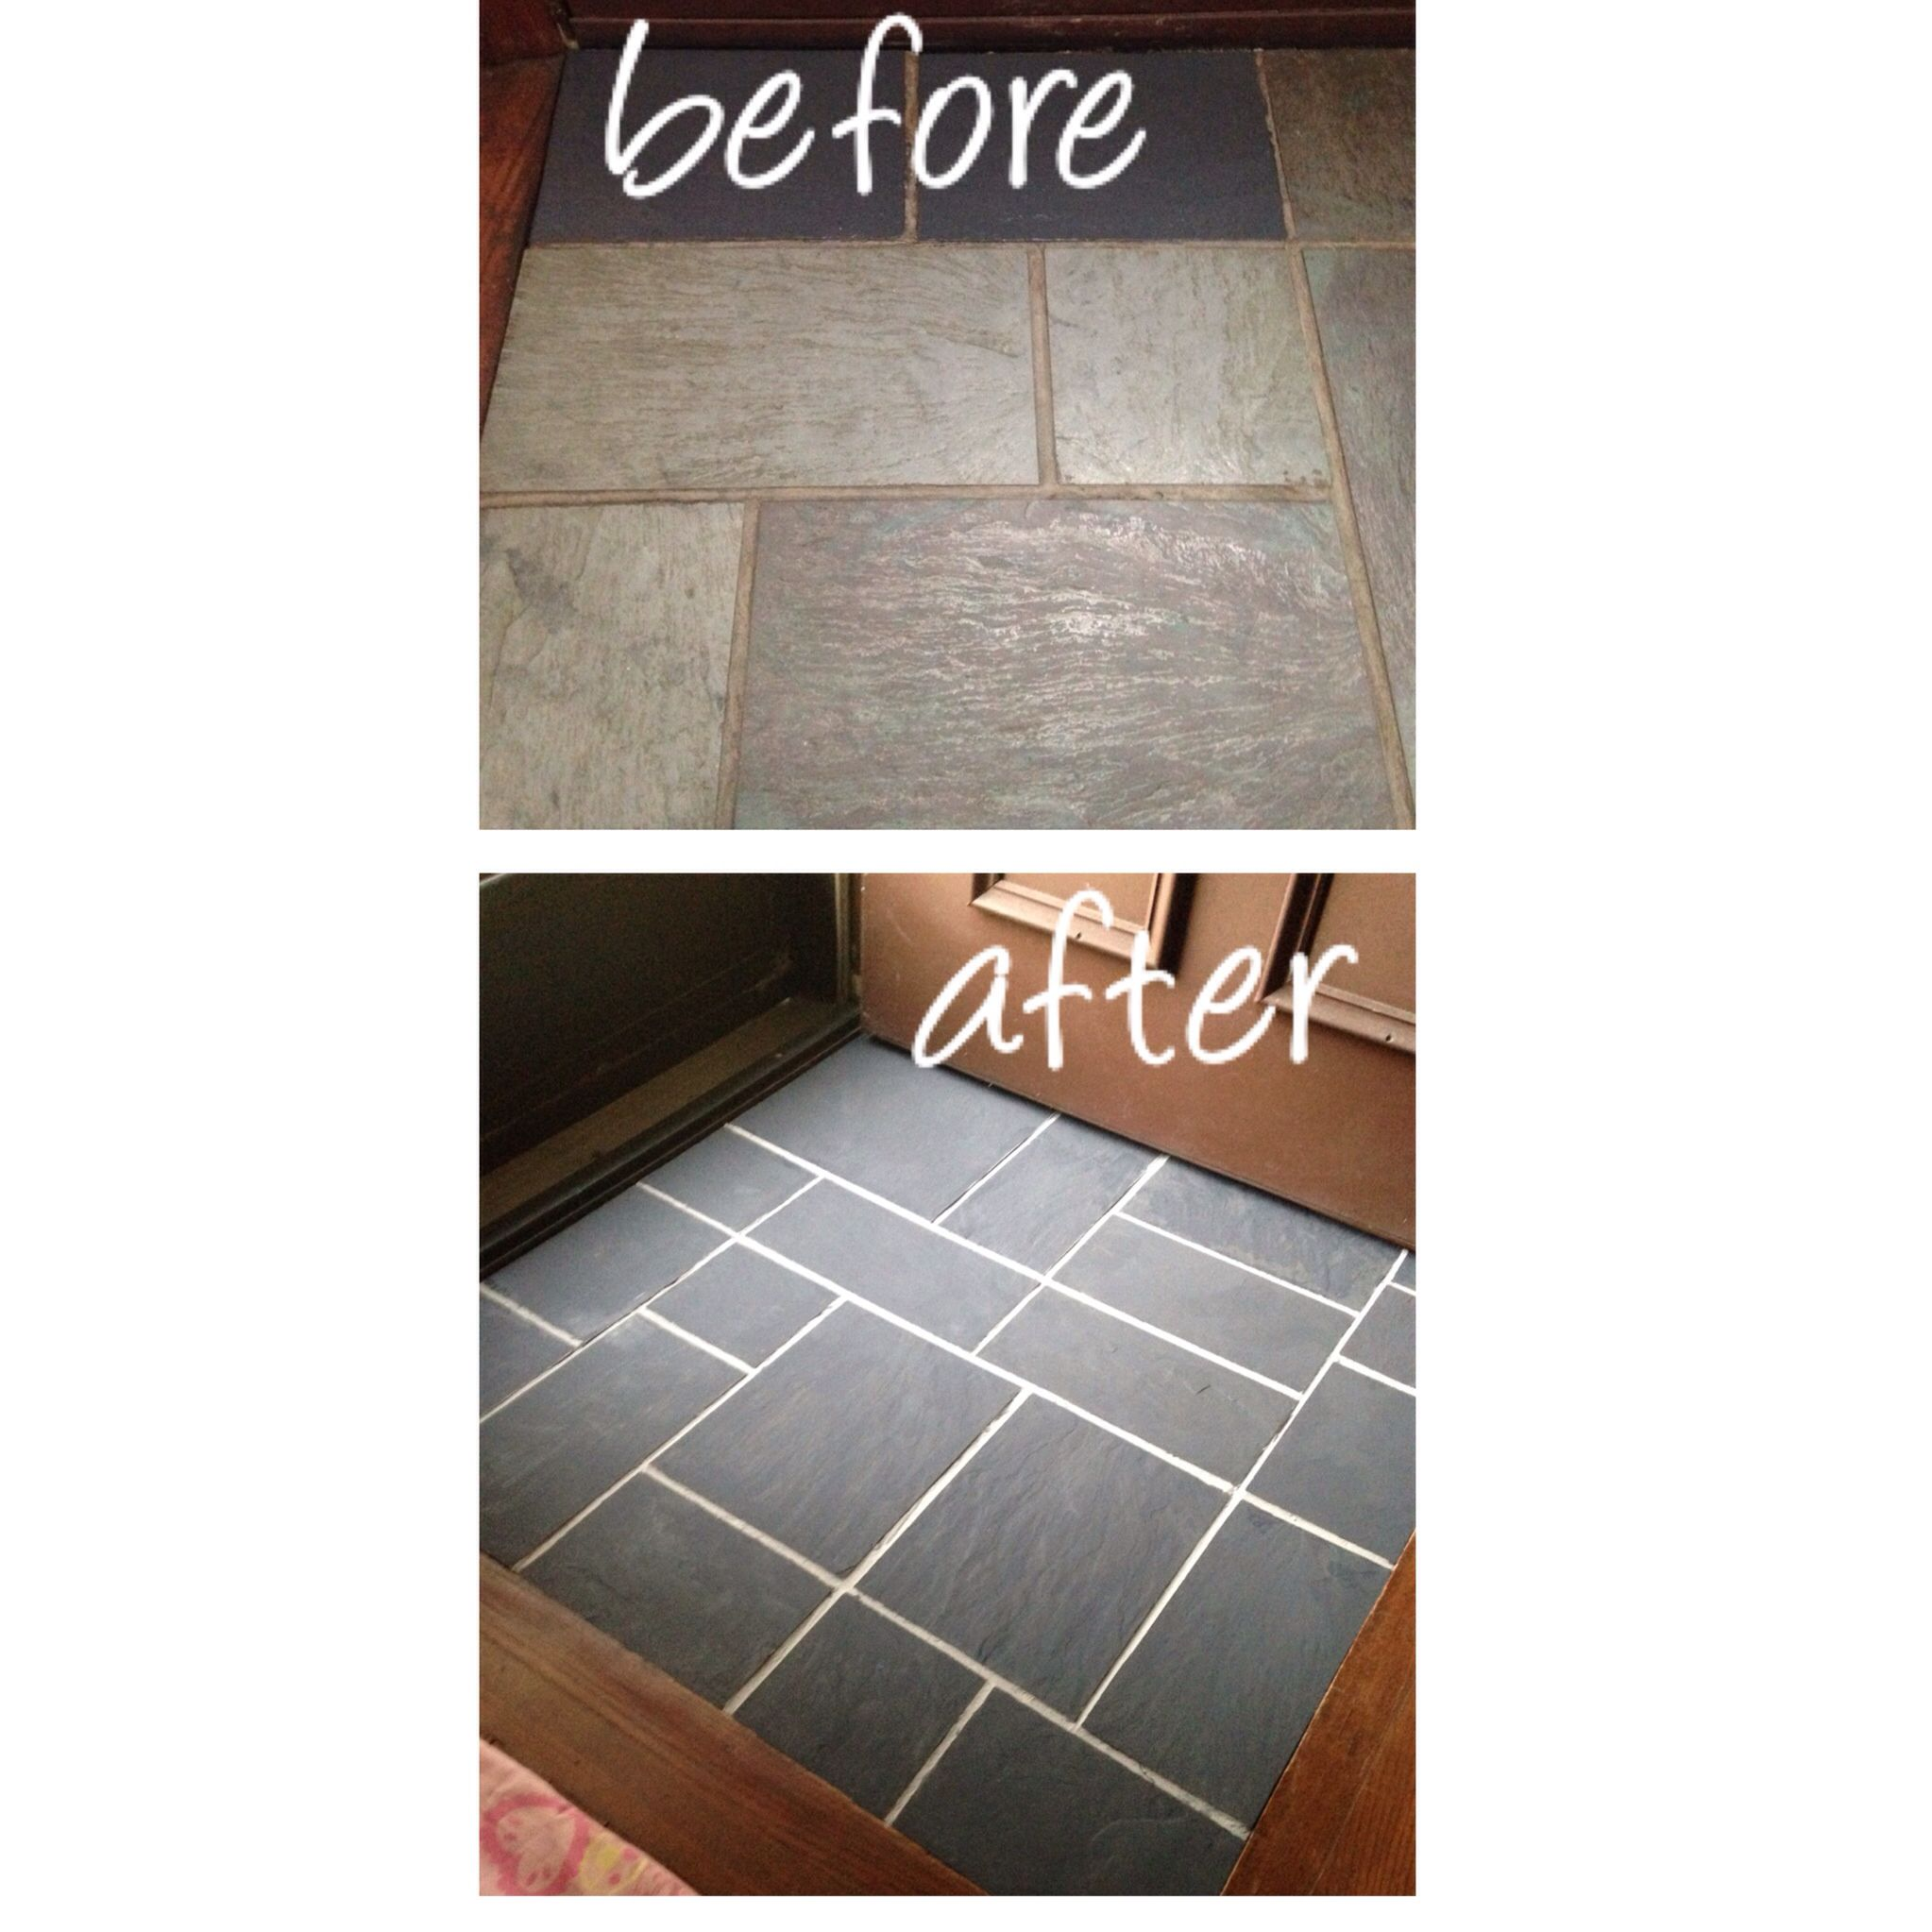 Painted Slate Floor In Entryway Using Annie Sloan Chalk Paint In Graphite On Tiles And French Linen In Grout Painting Tile Floors Painting Tile Slate Flooring